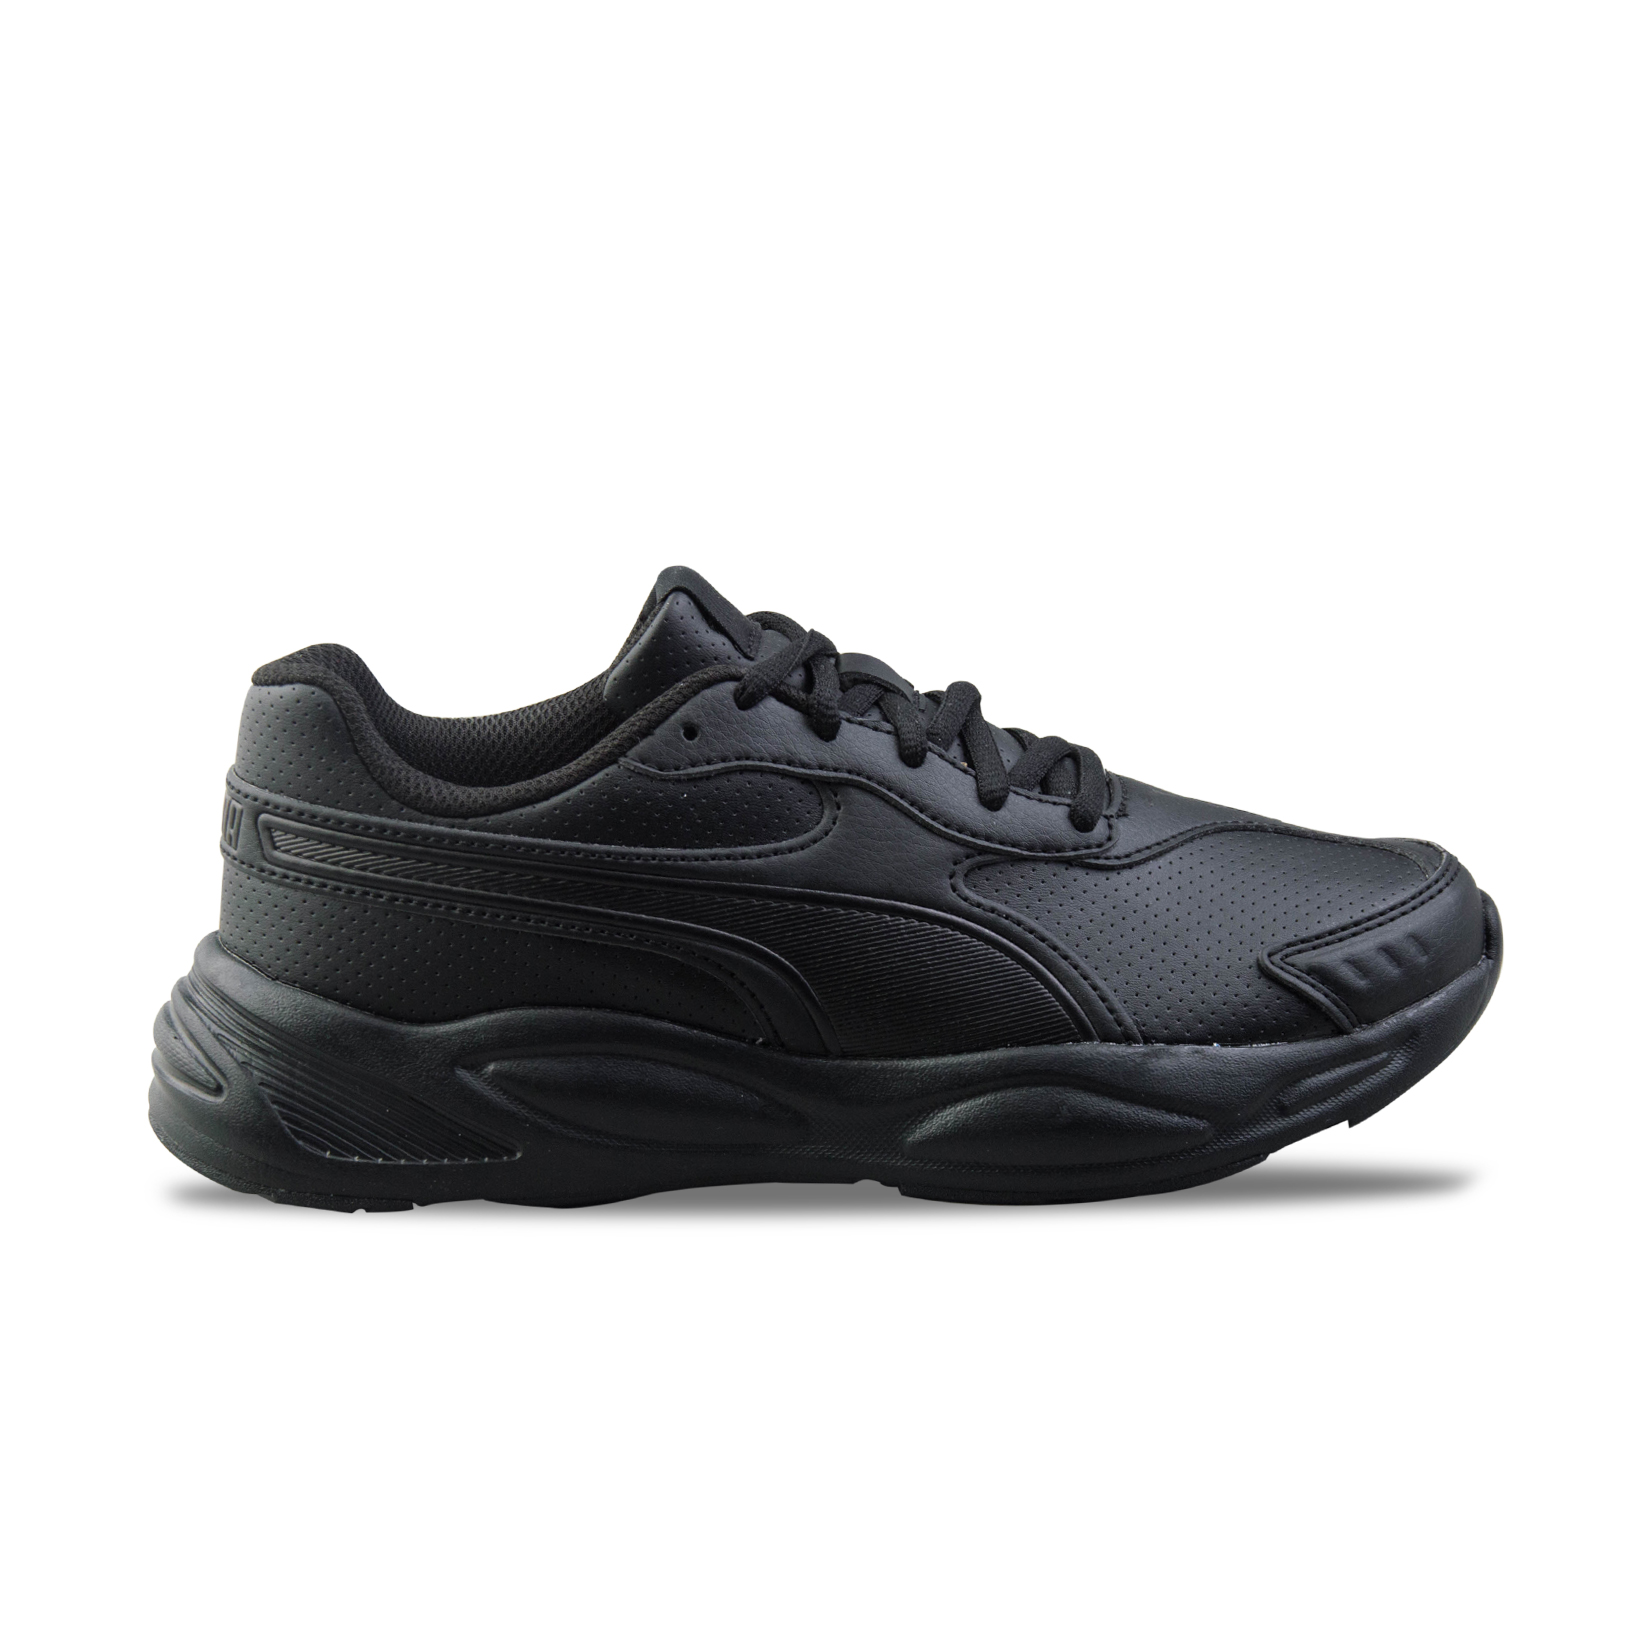 Puma 90s Runner SL J Black